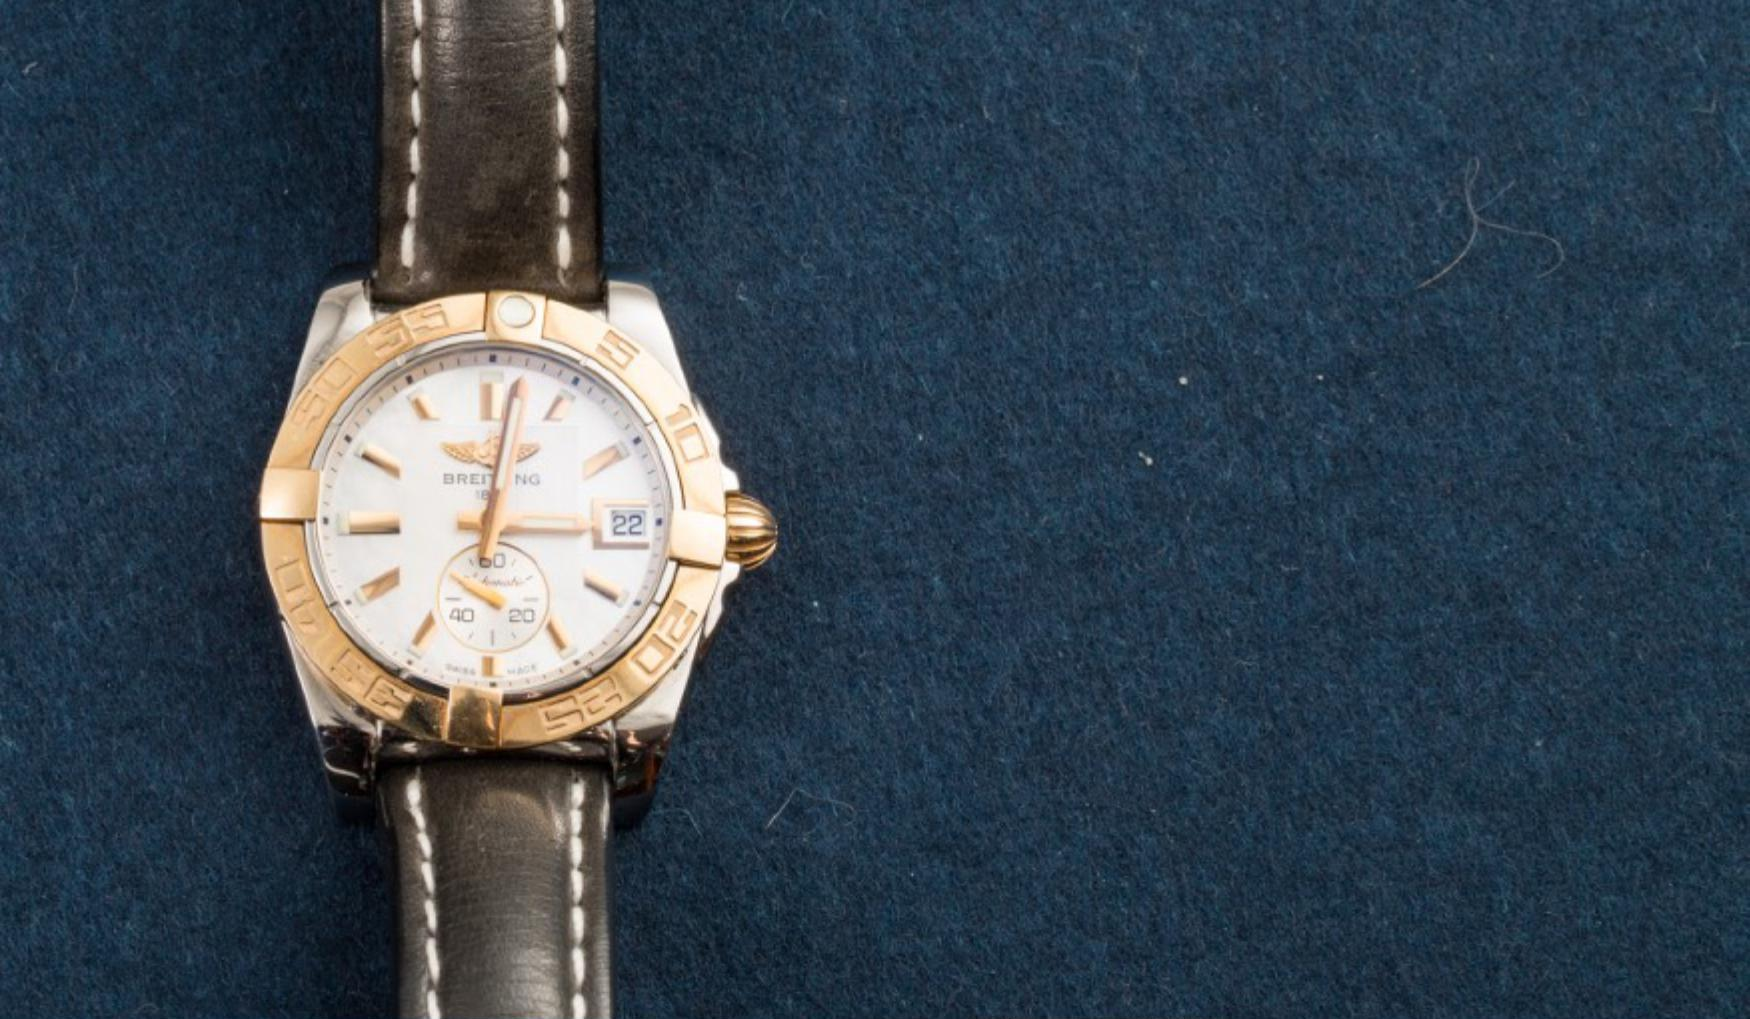 Lot 6 - BREITLING, New Old Stock, Galactic